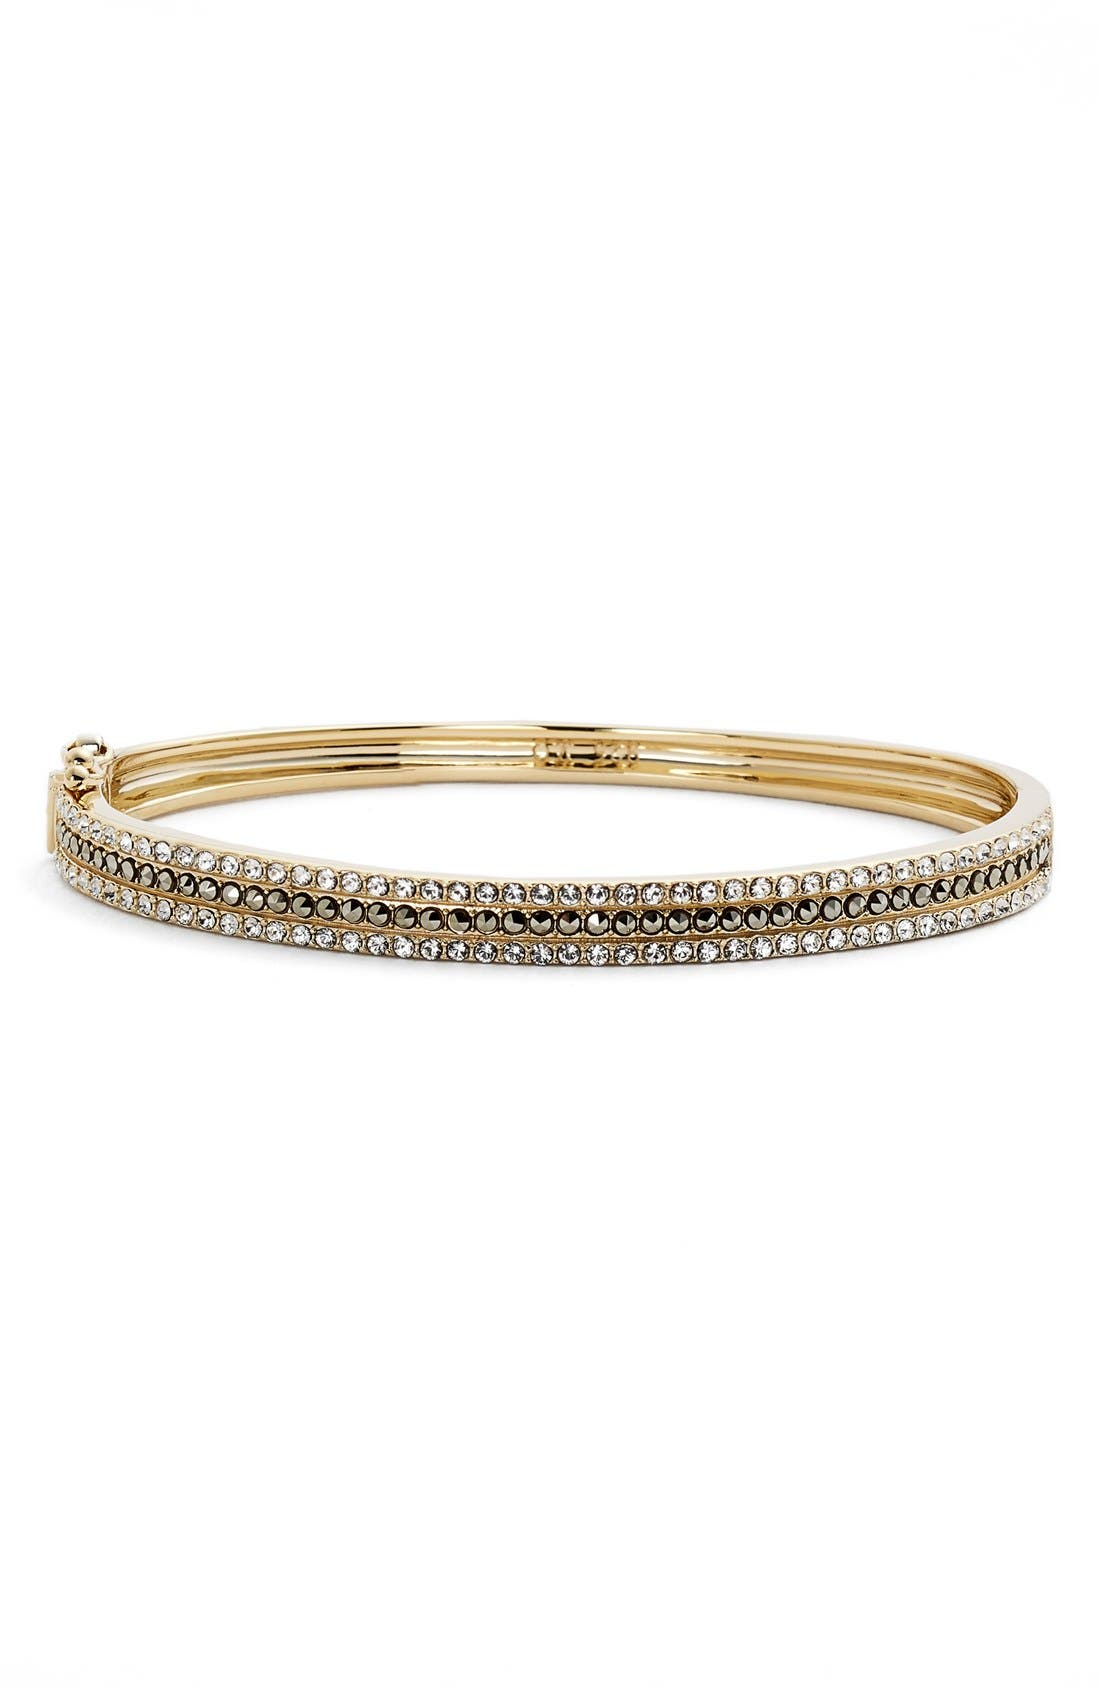 Judith Jack Three Row Bangle Bracelet